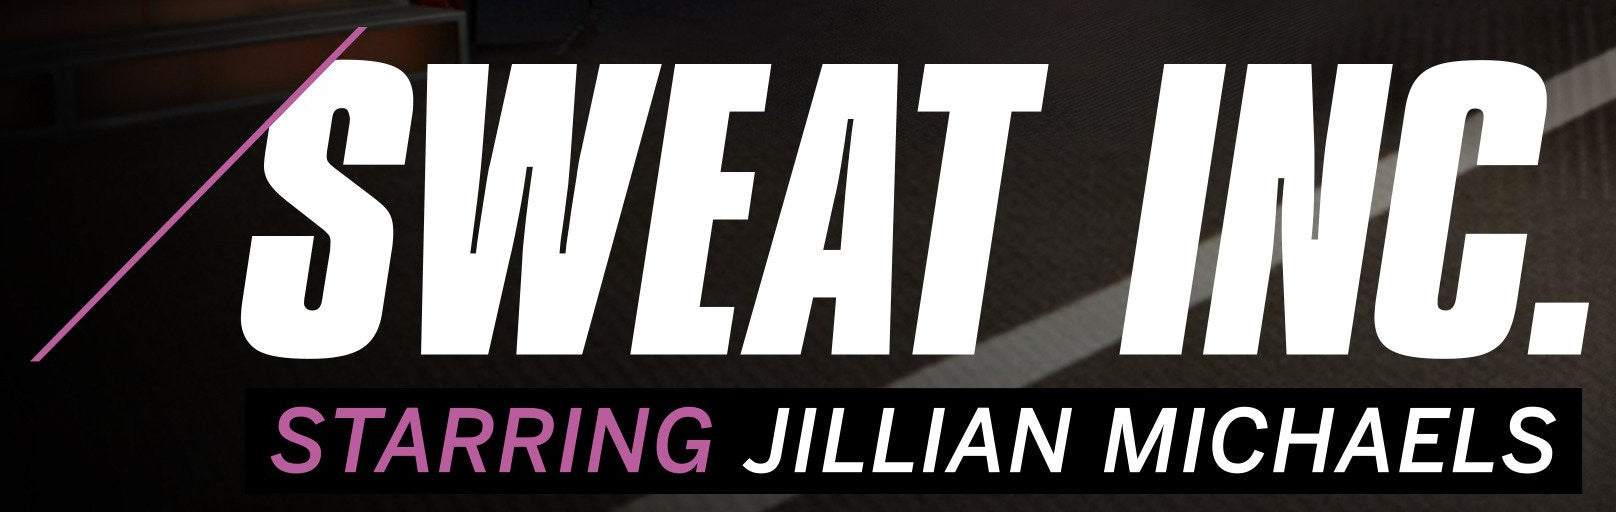 Black white and pink Sweat INC. starring Jillian Michaels logo